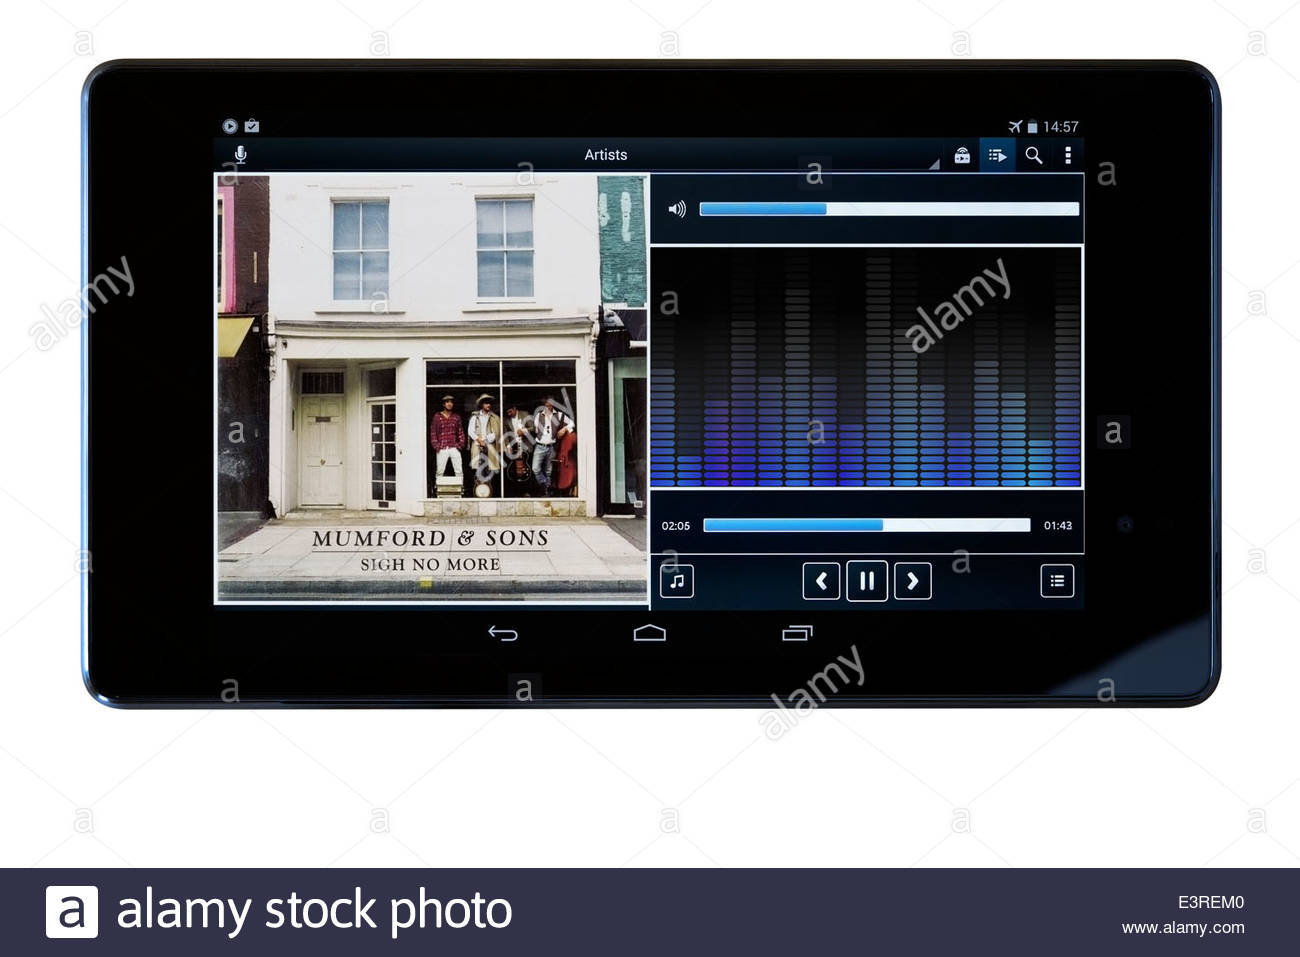 Mumford & Sons, Sigh No More, MP3 album art on PC tablet, England - Stock Image